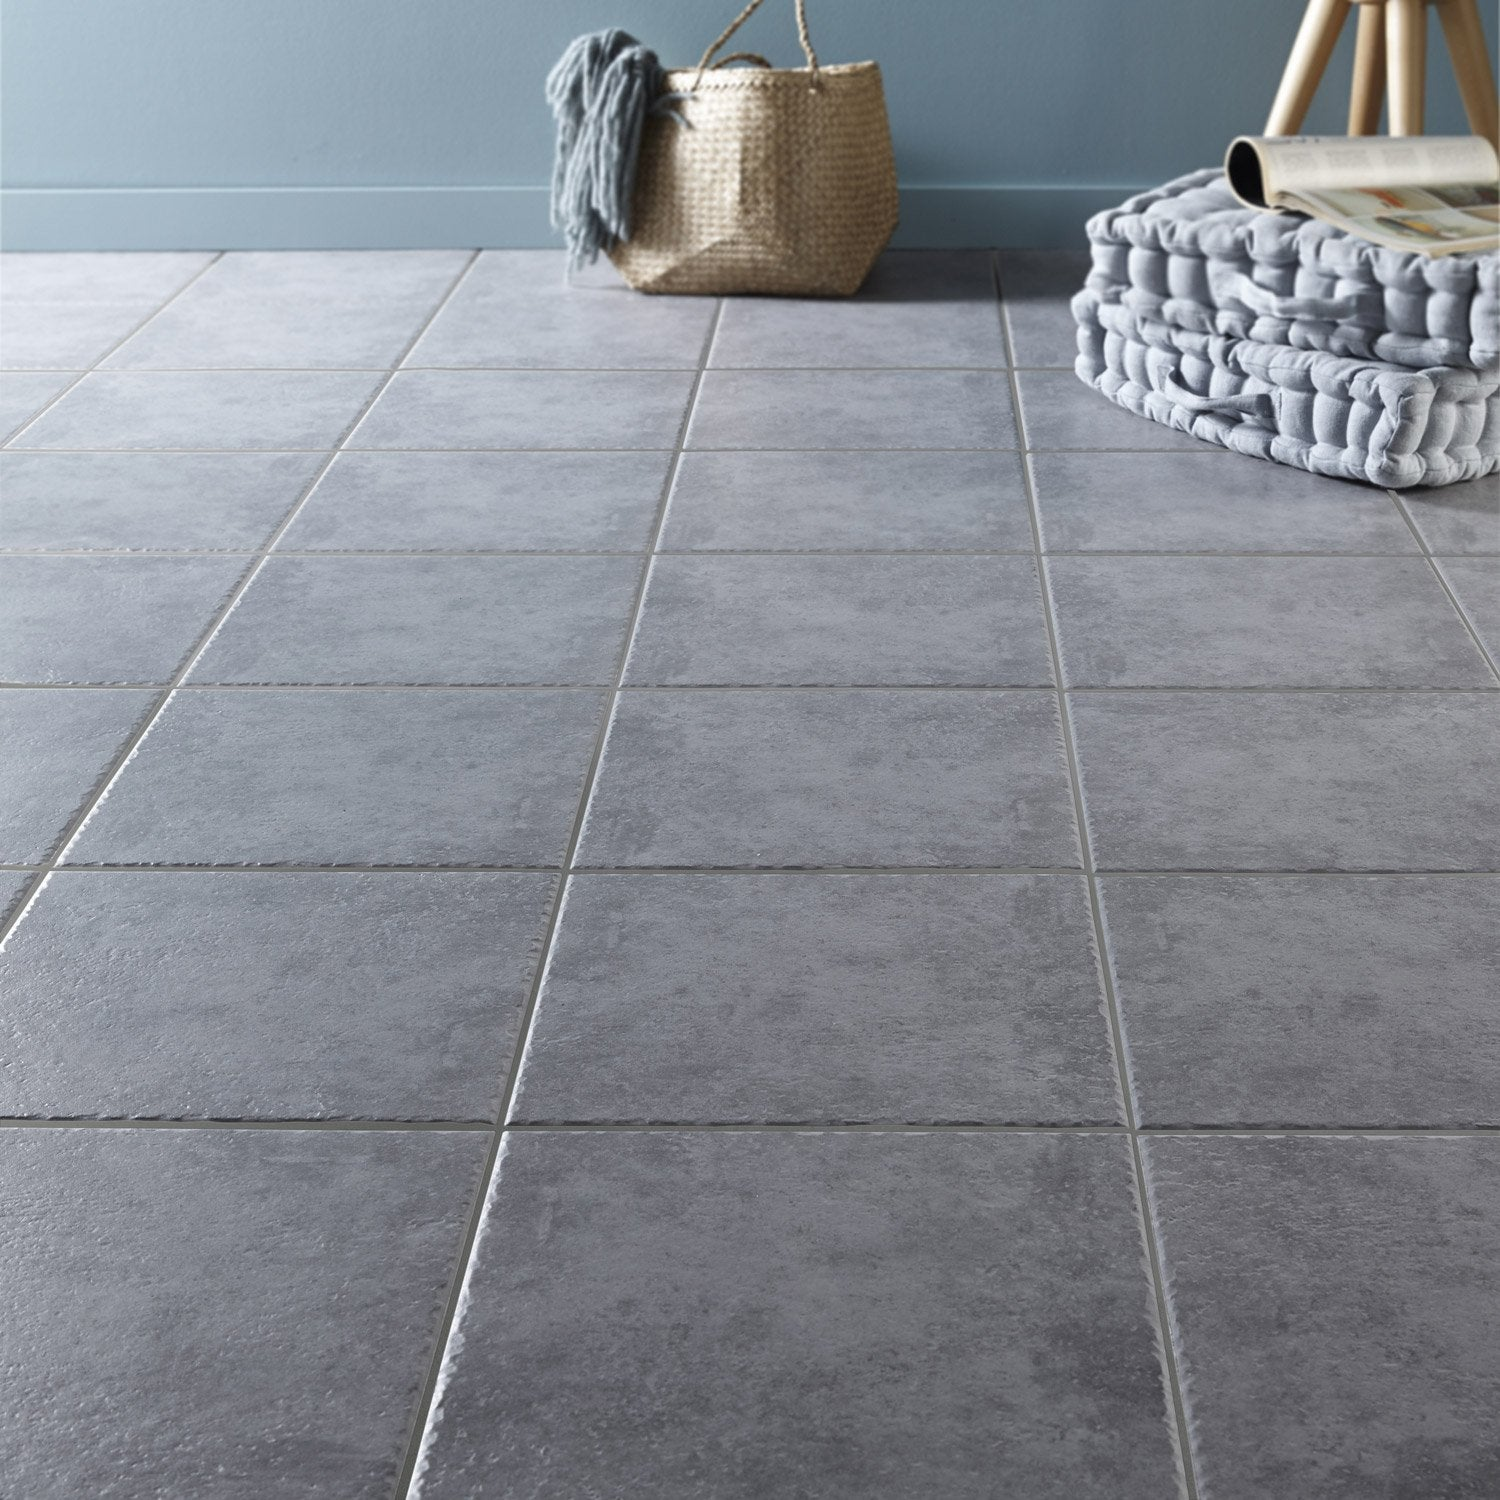 Carrelage sol gris souris effet pierre michigan x l for Carrelage gris leroy merlin